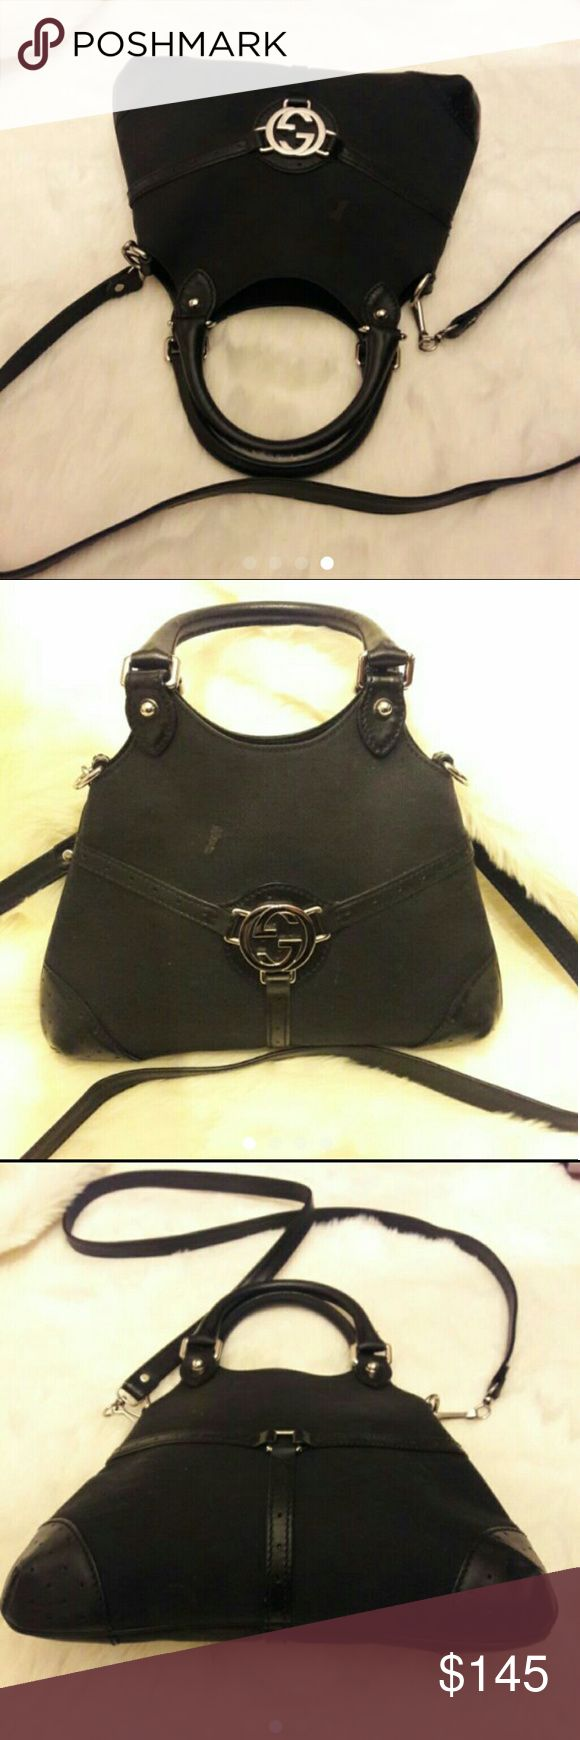 Gucci Interlock GG Mini 2way bag Authentic! In Pre-Owned Good Condition !! Has small spot in the very front just needs to be cleaning nothing major.  Very Cute! Mini/ Small Size Bag. Gucci Bags Crossbody Bags